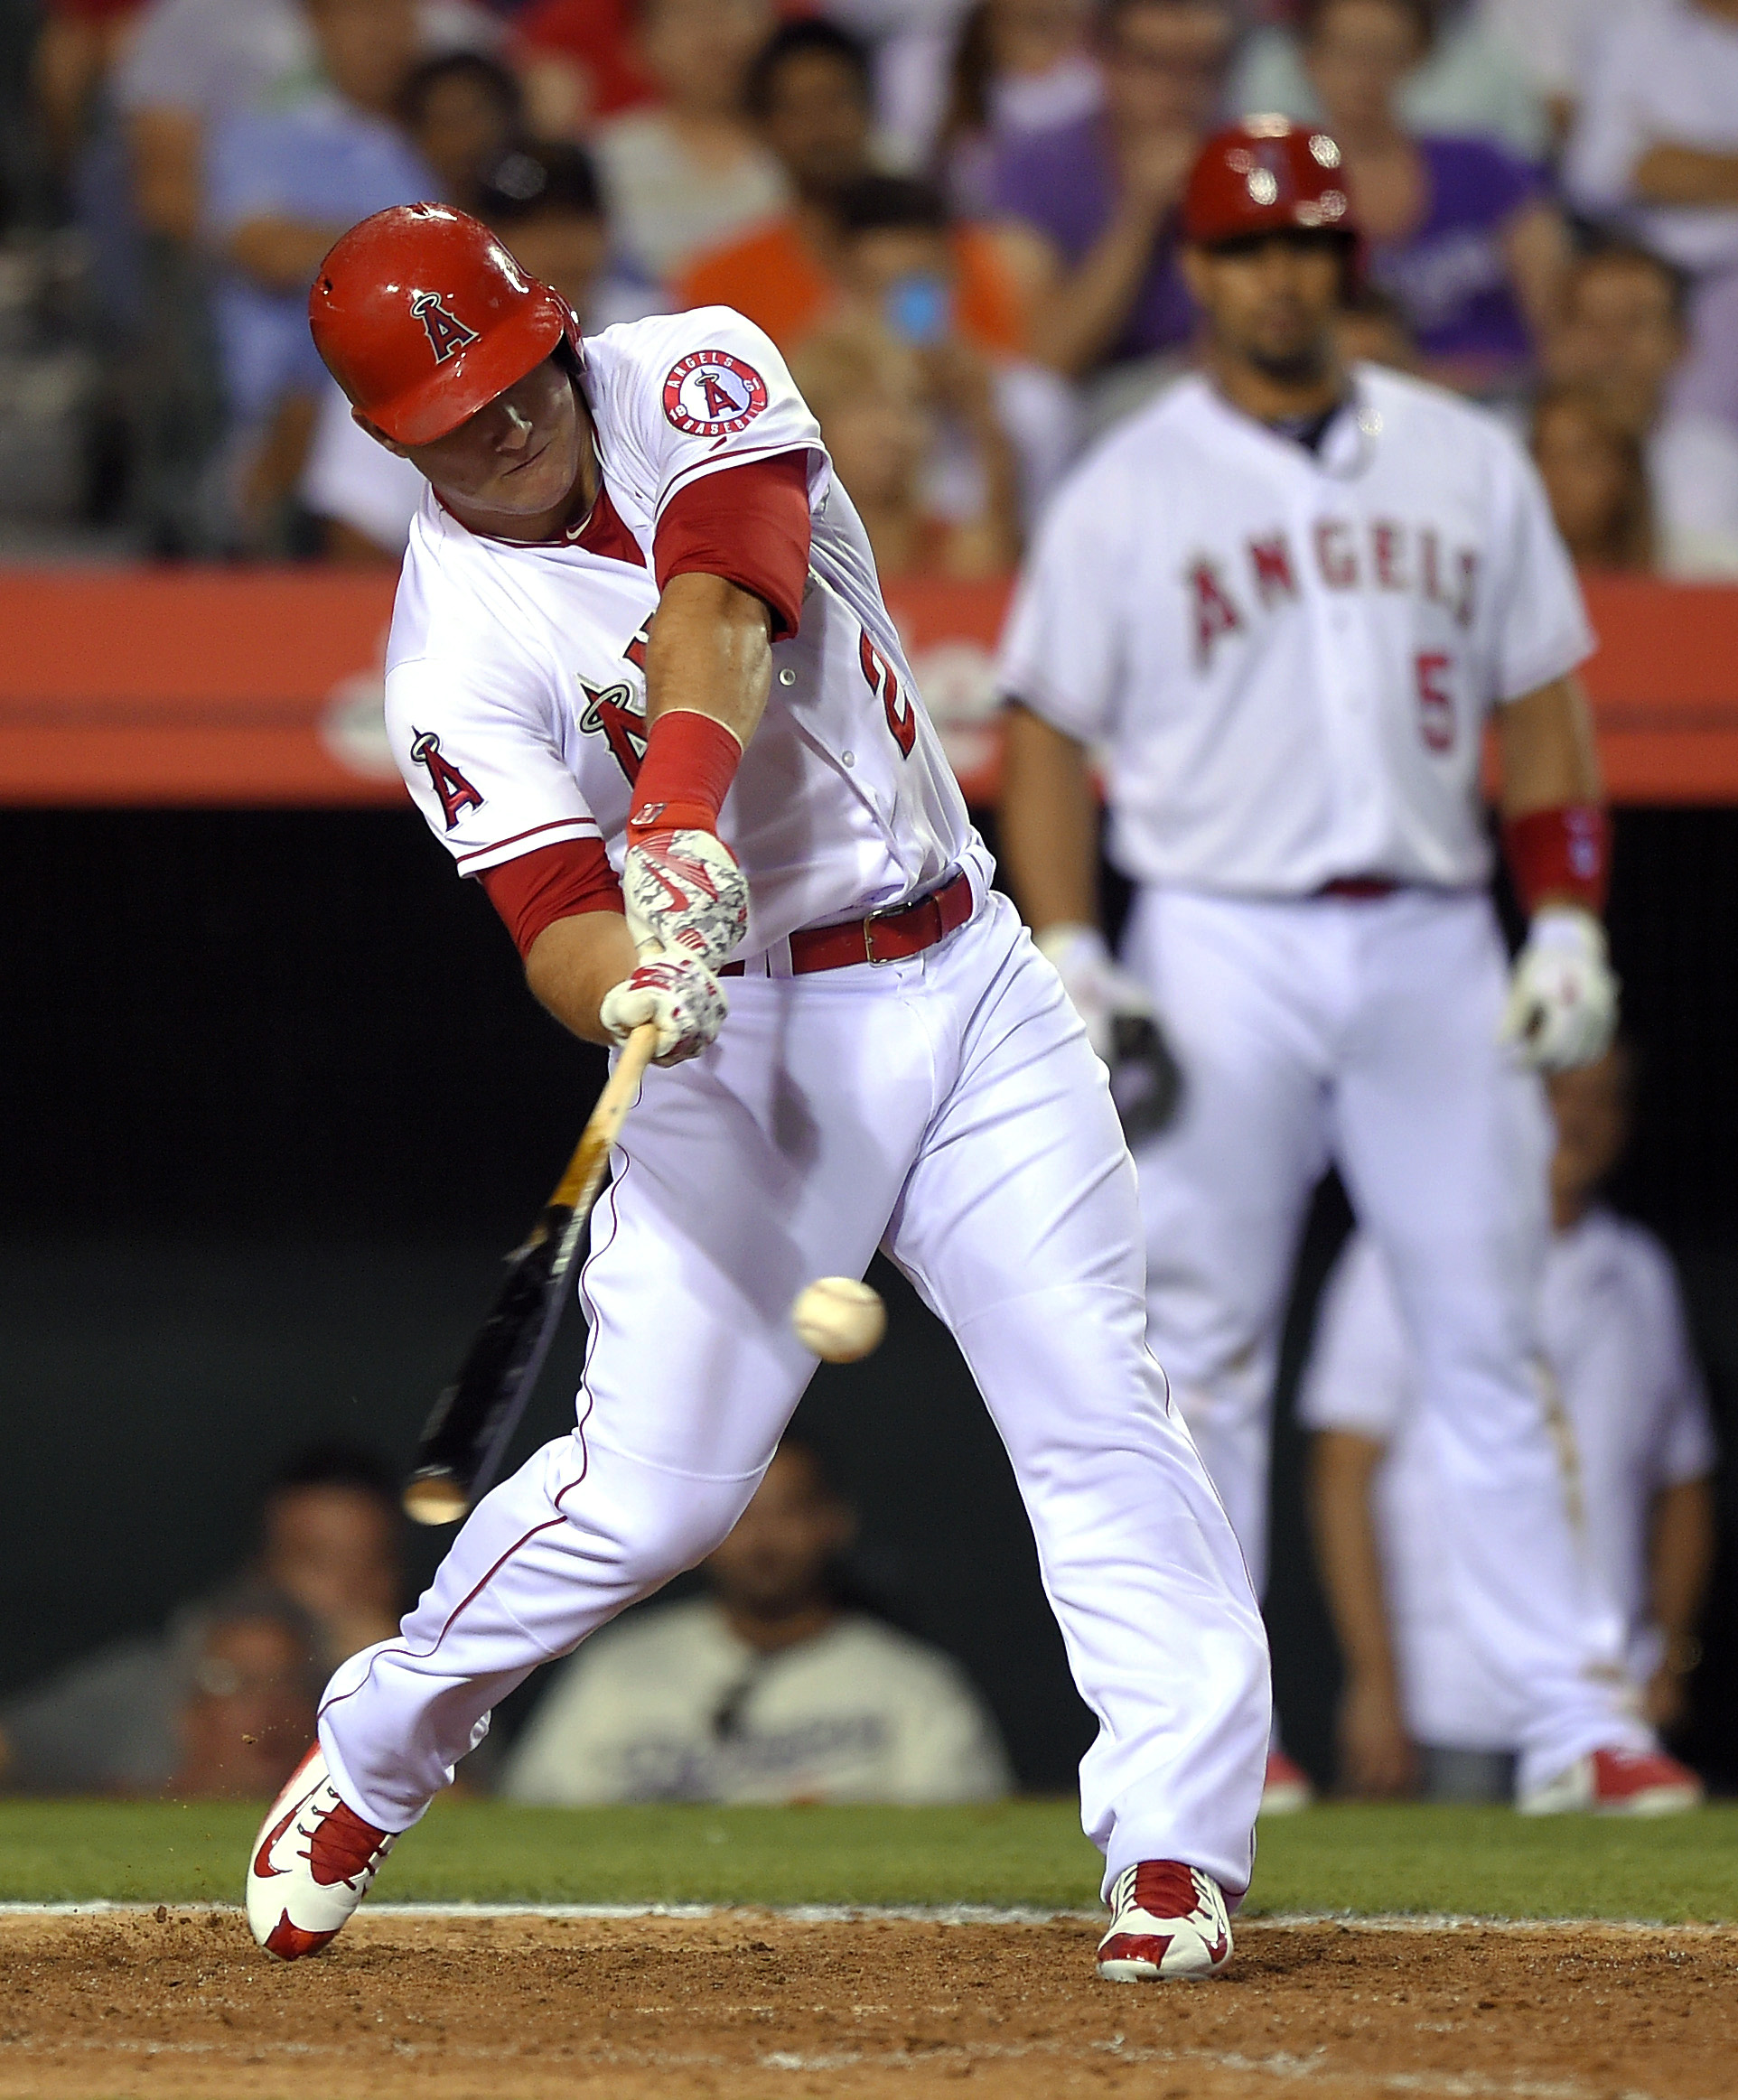 Los Angeles Angels' Mike Trout hits a solo home run during the ninth inning of a baseball game against the Boston Red Sox, Friday, July 17, 2015, in Anaheim, Calif. The Angels won 1-0. (AP Photo/Mark J. Terrill)